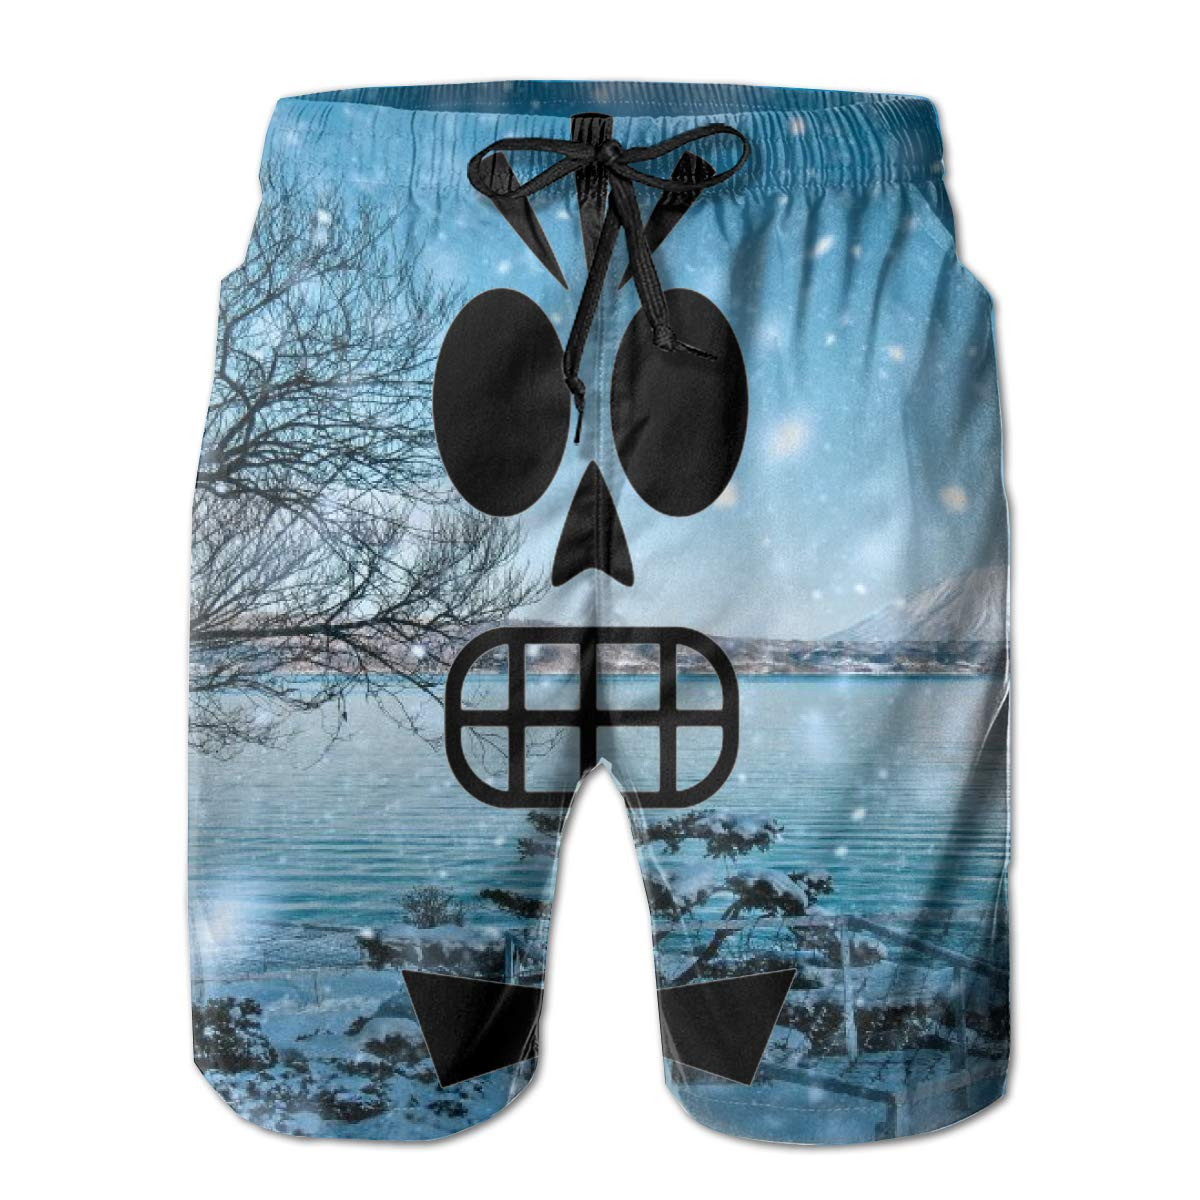 You Know And Good Manny Calavera Mens Swim Trunks Bathing Suit Beach Shorts